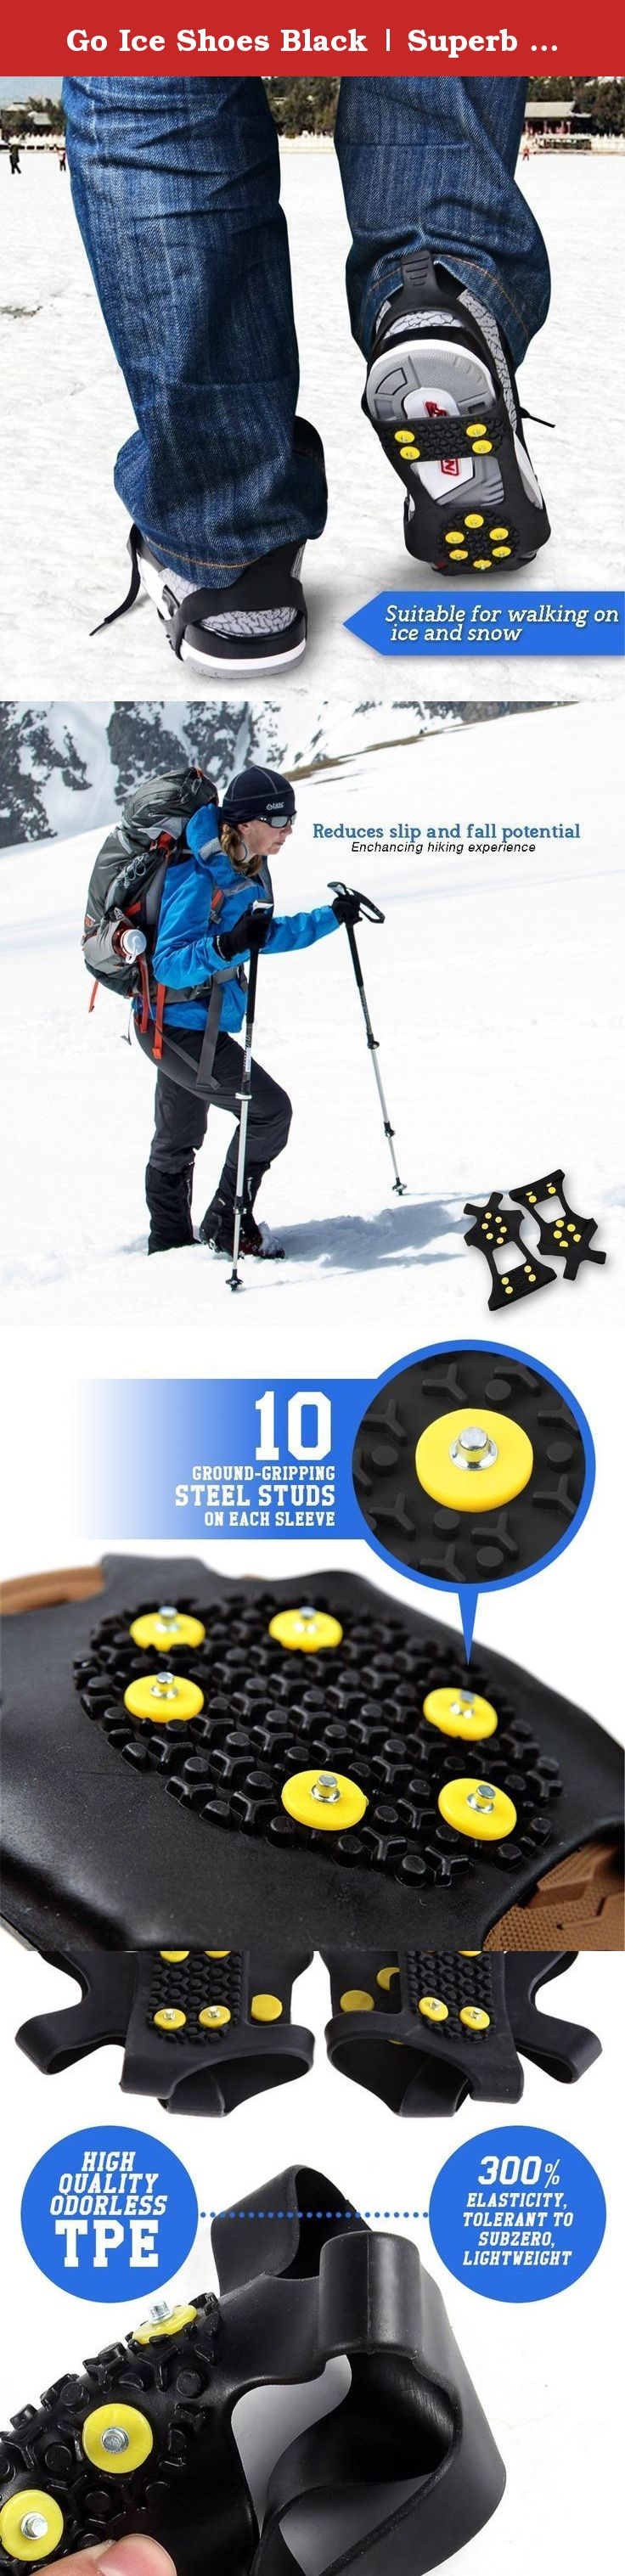 Go Ice Shoes Black | Superb Slip On Stretch Fit Ice and Snow Grips Traction Cleats with 10 Anti Slip Steel Studs / Spikes / Crampons | Premium TPE Material | US Women 7 To 10 or US Men 5 To 8 Size. Go Ice Shoe Black (TM) Don't let the icy street during winter holds you back from being active and productive! So many of us are locked indoors, having our days all messed up and turn bleak, no thanks to the piled-up snow and glassy roads outside. Fret no more; we bring you Go Ice Shoe Black…